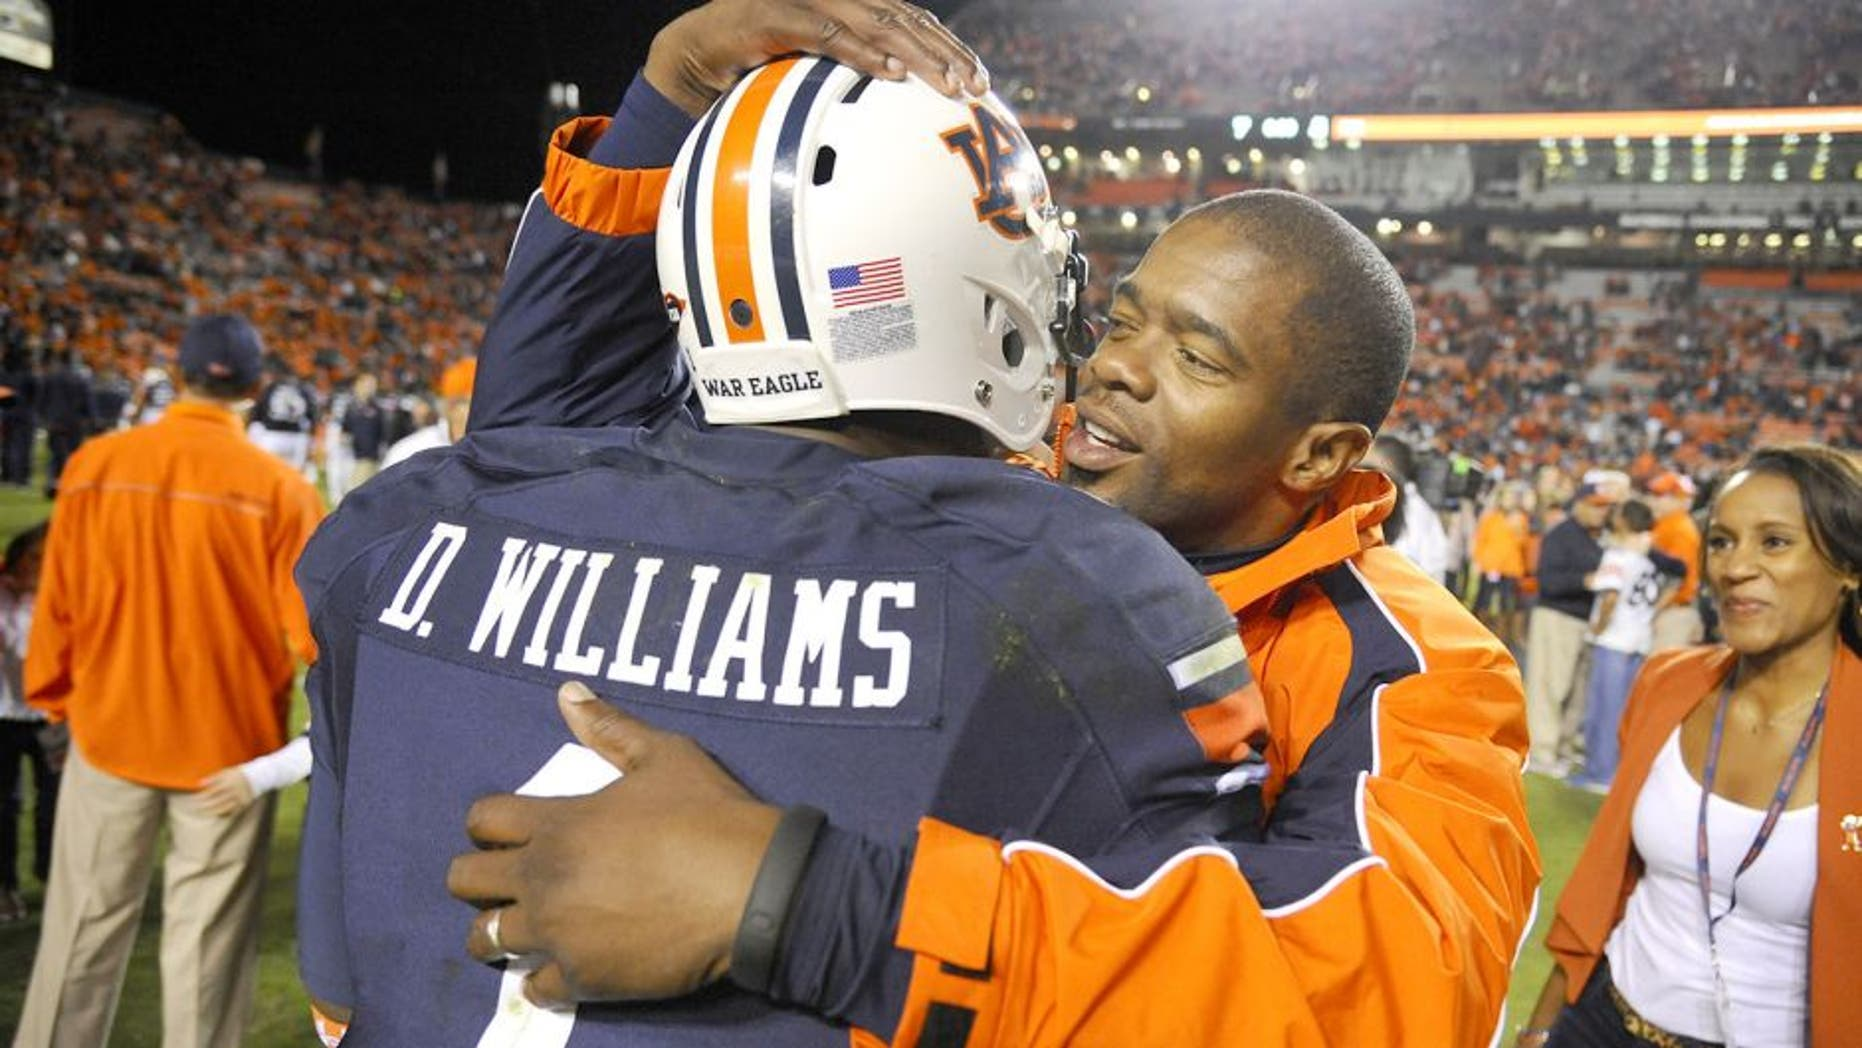 Oct 4, 2014; Auburn, AL, USA; Auburn Tigers wide receiver D'haquille Williams (1) hugs co-offensive coordinator Dameyune Craig after the game against the LSU Tigers at Jordan Hare Stadium. Auburn won 41-7. Mandatory Credit: Shanna Lockwood-USA TODAY Sports